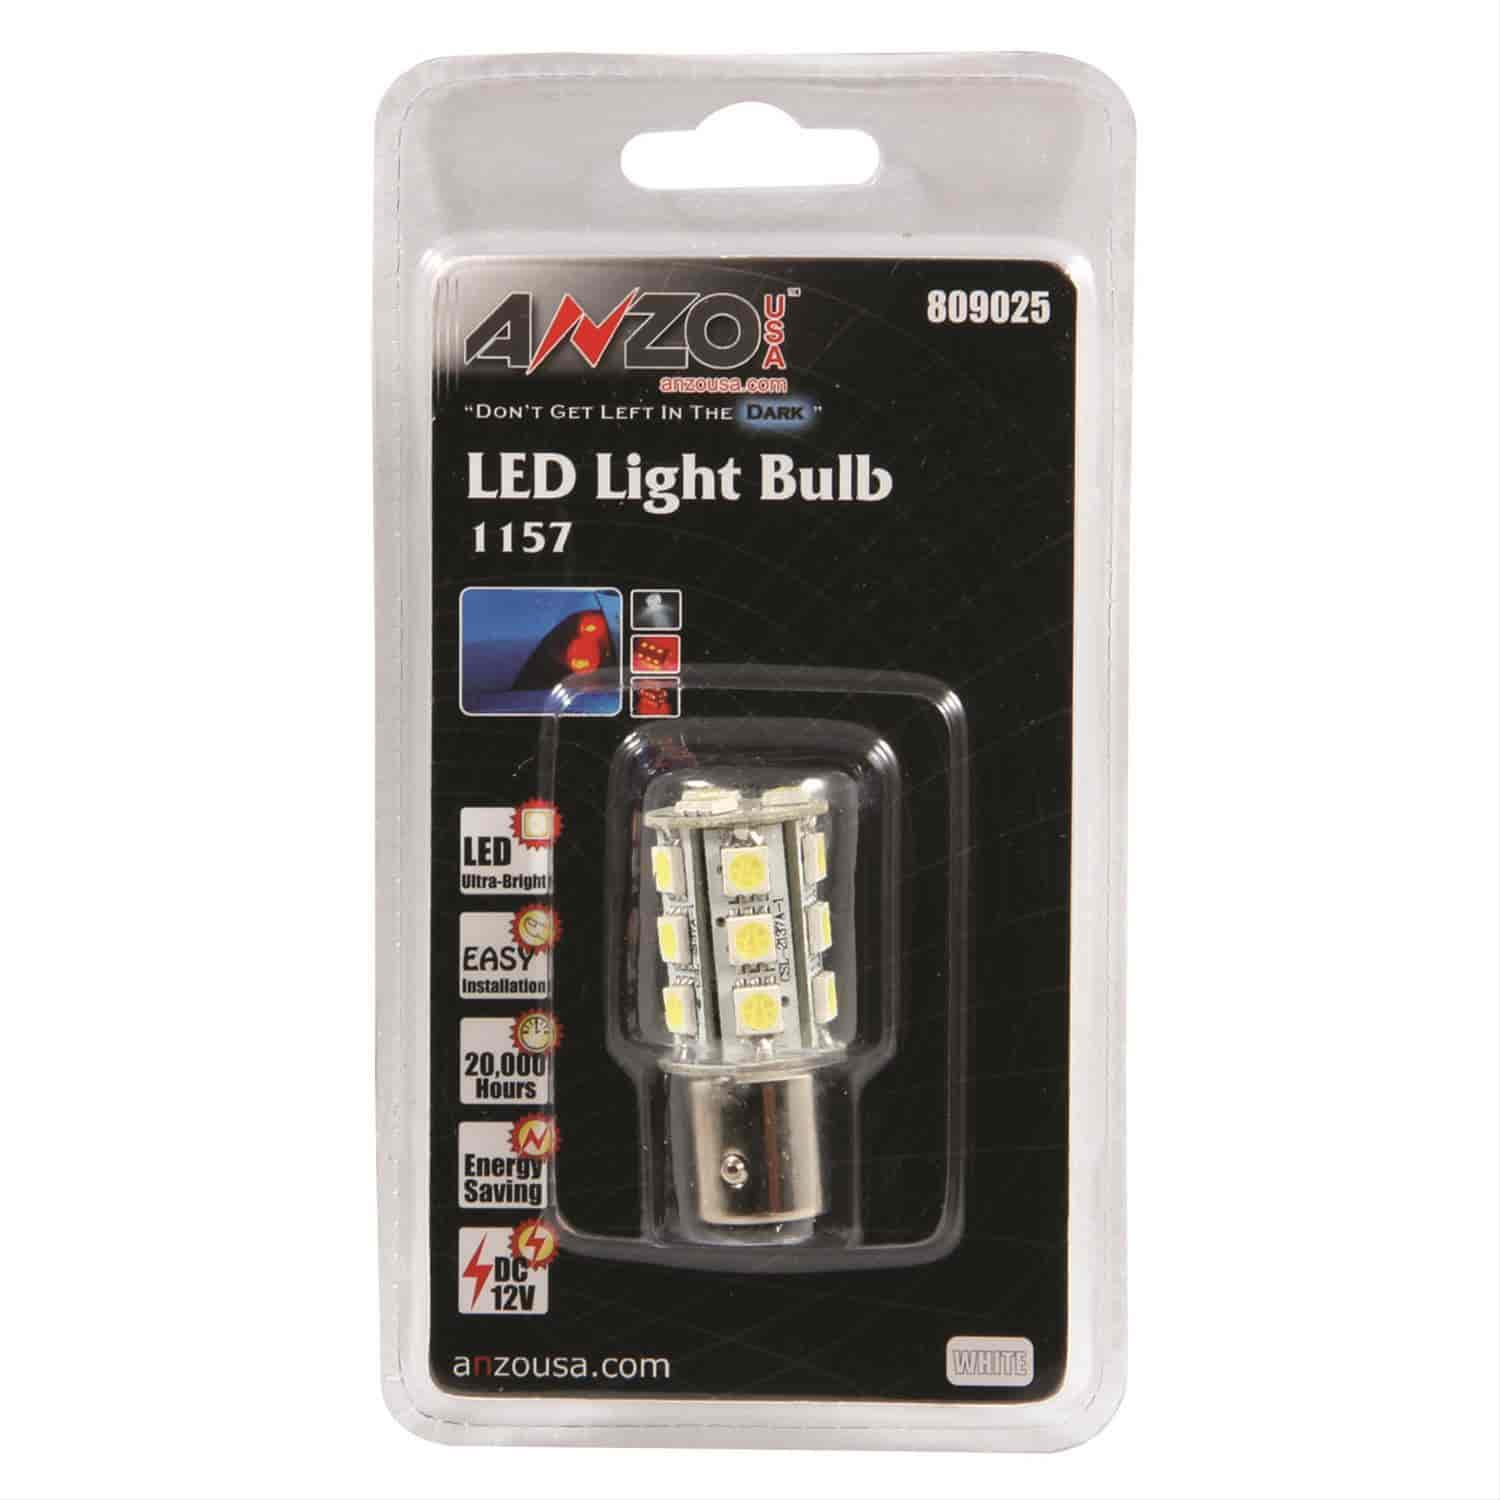 Anzo 809025 - Anzo LED Universal Light Bulbs